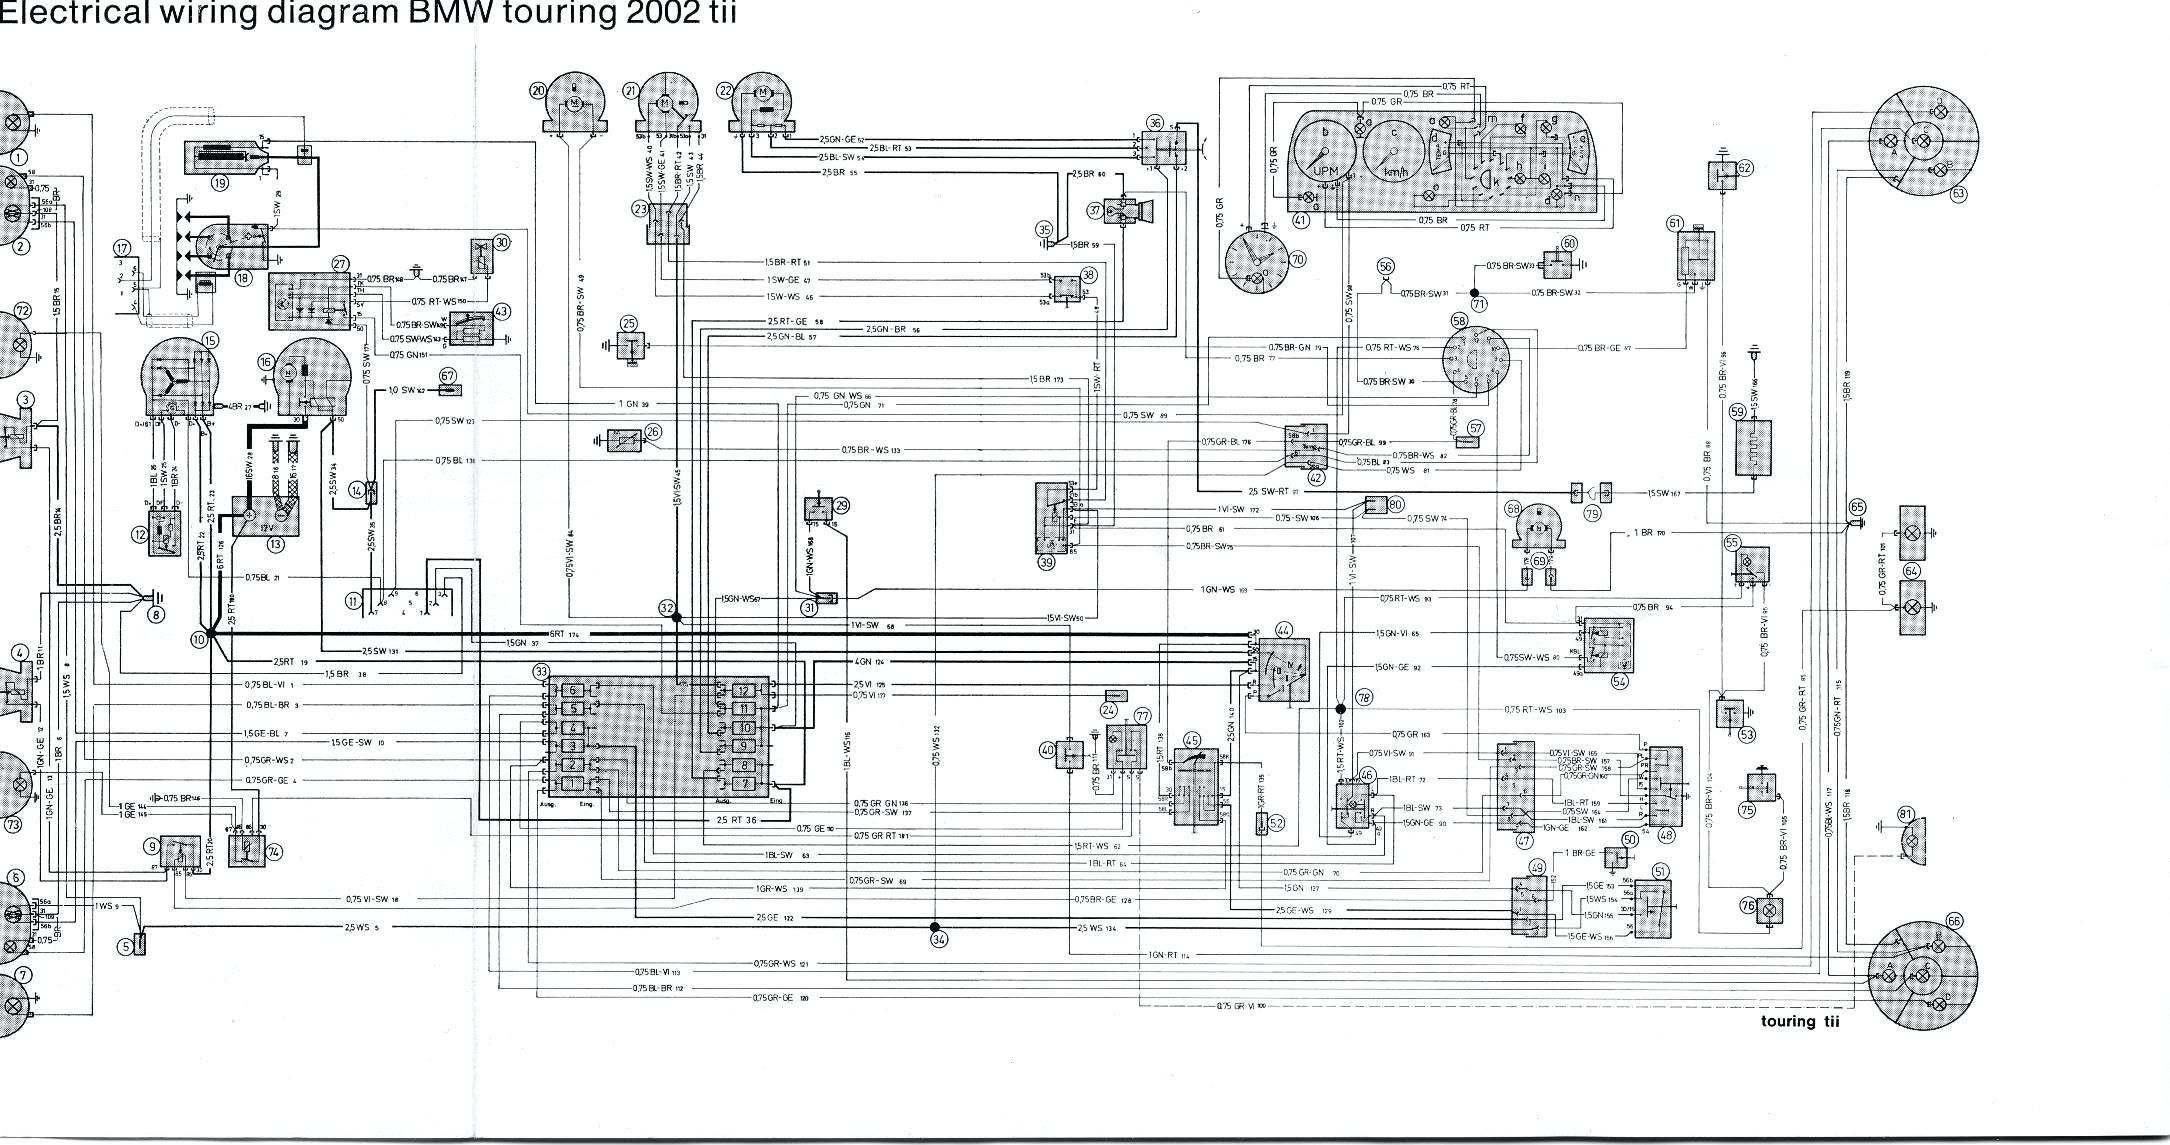 Bmw E46 Coupe Wiring Diagram Diagram Diagramtemplate Diagramsample